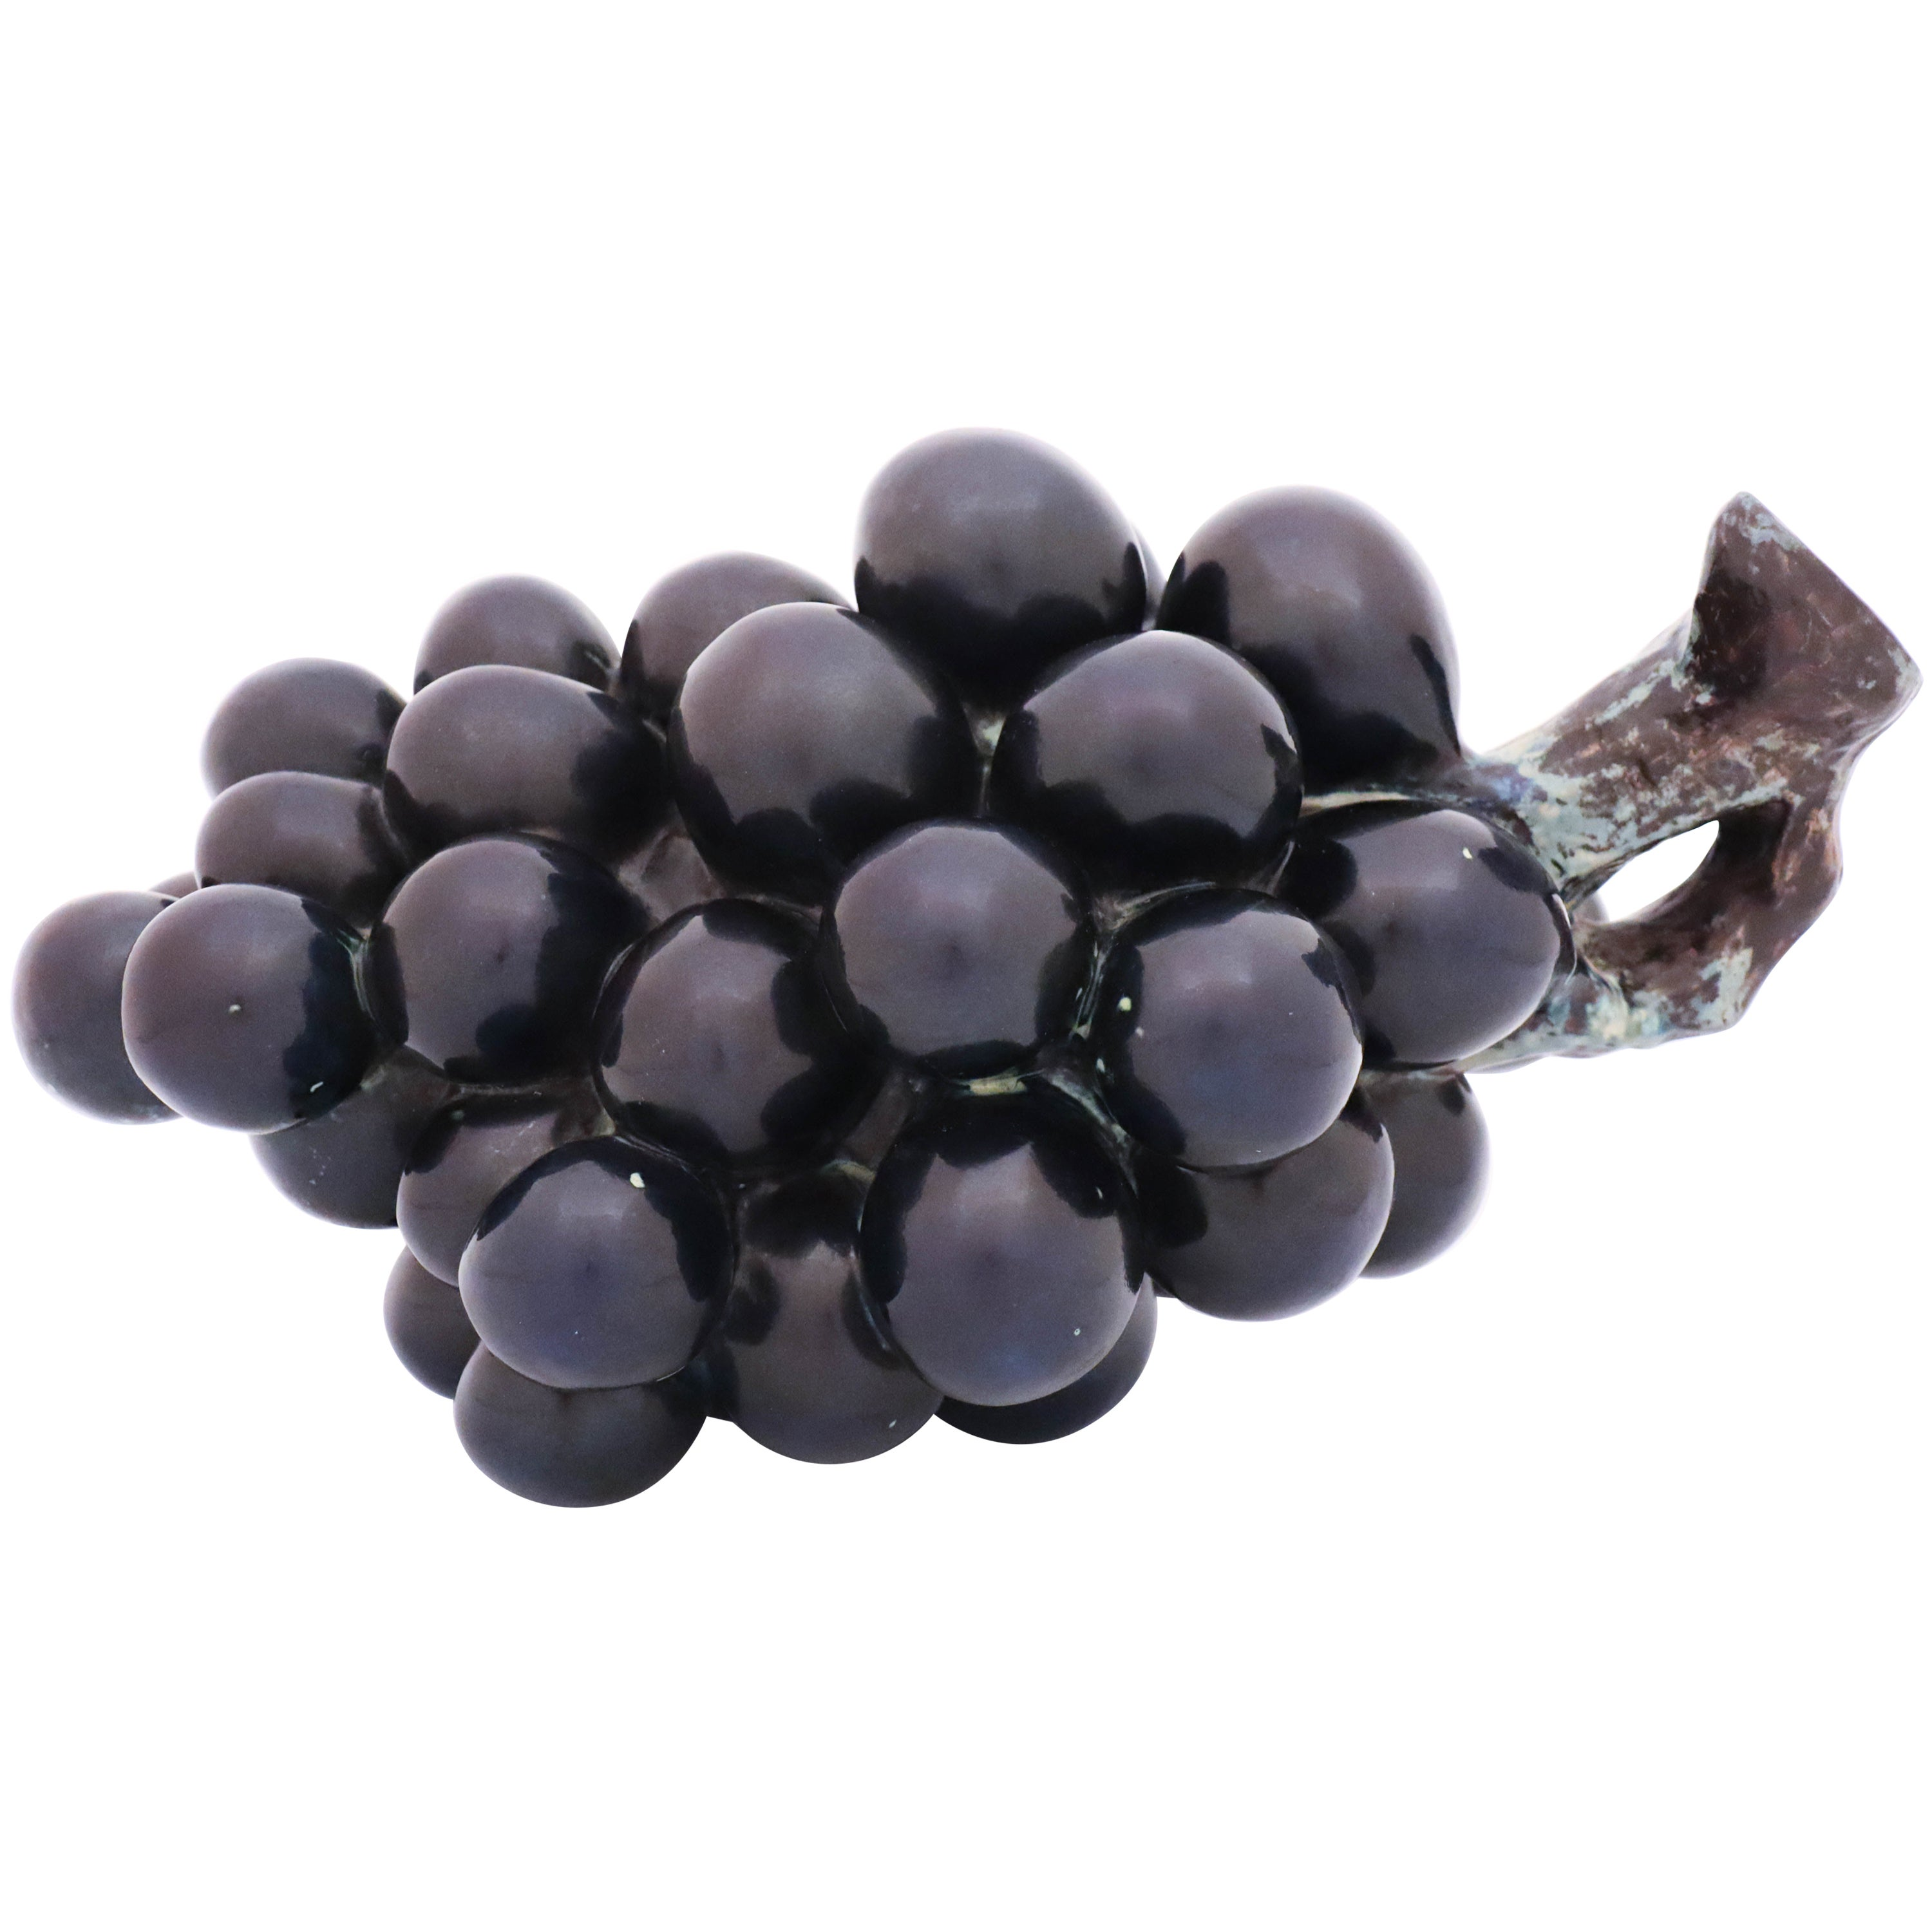 Bunch of Grapes, Ceramics by Hans Hedberg, Biot, France